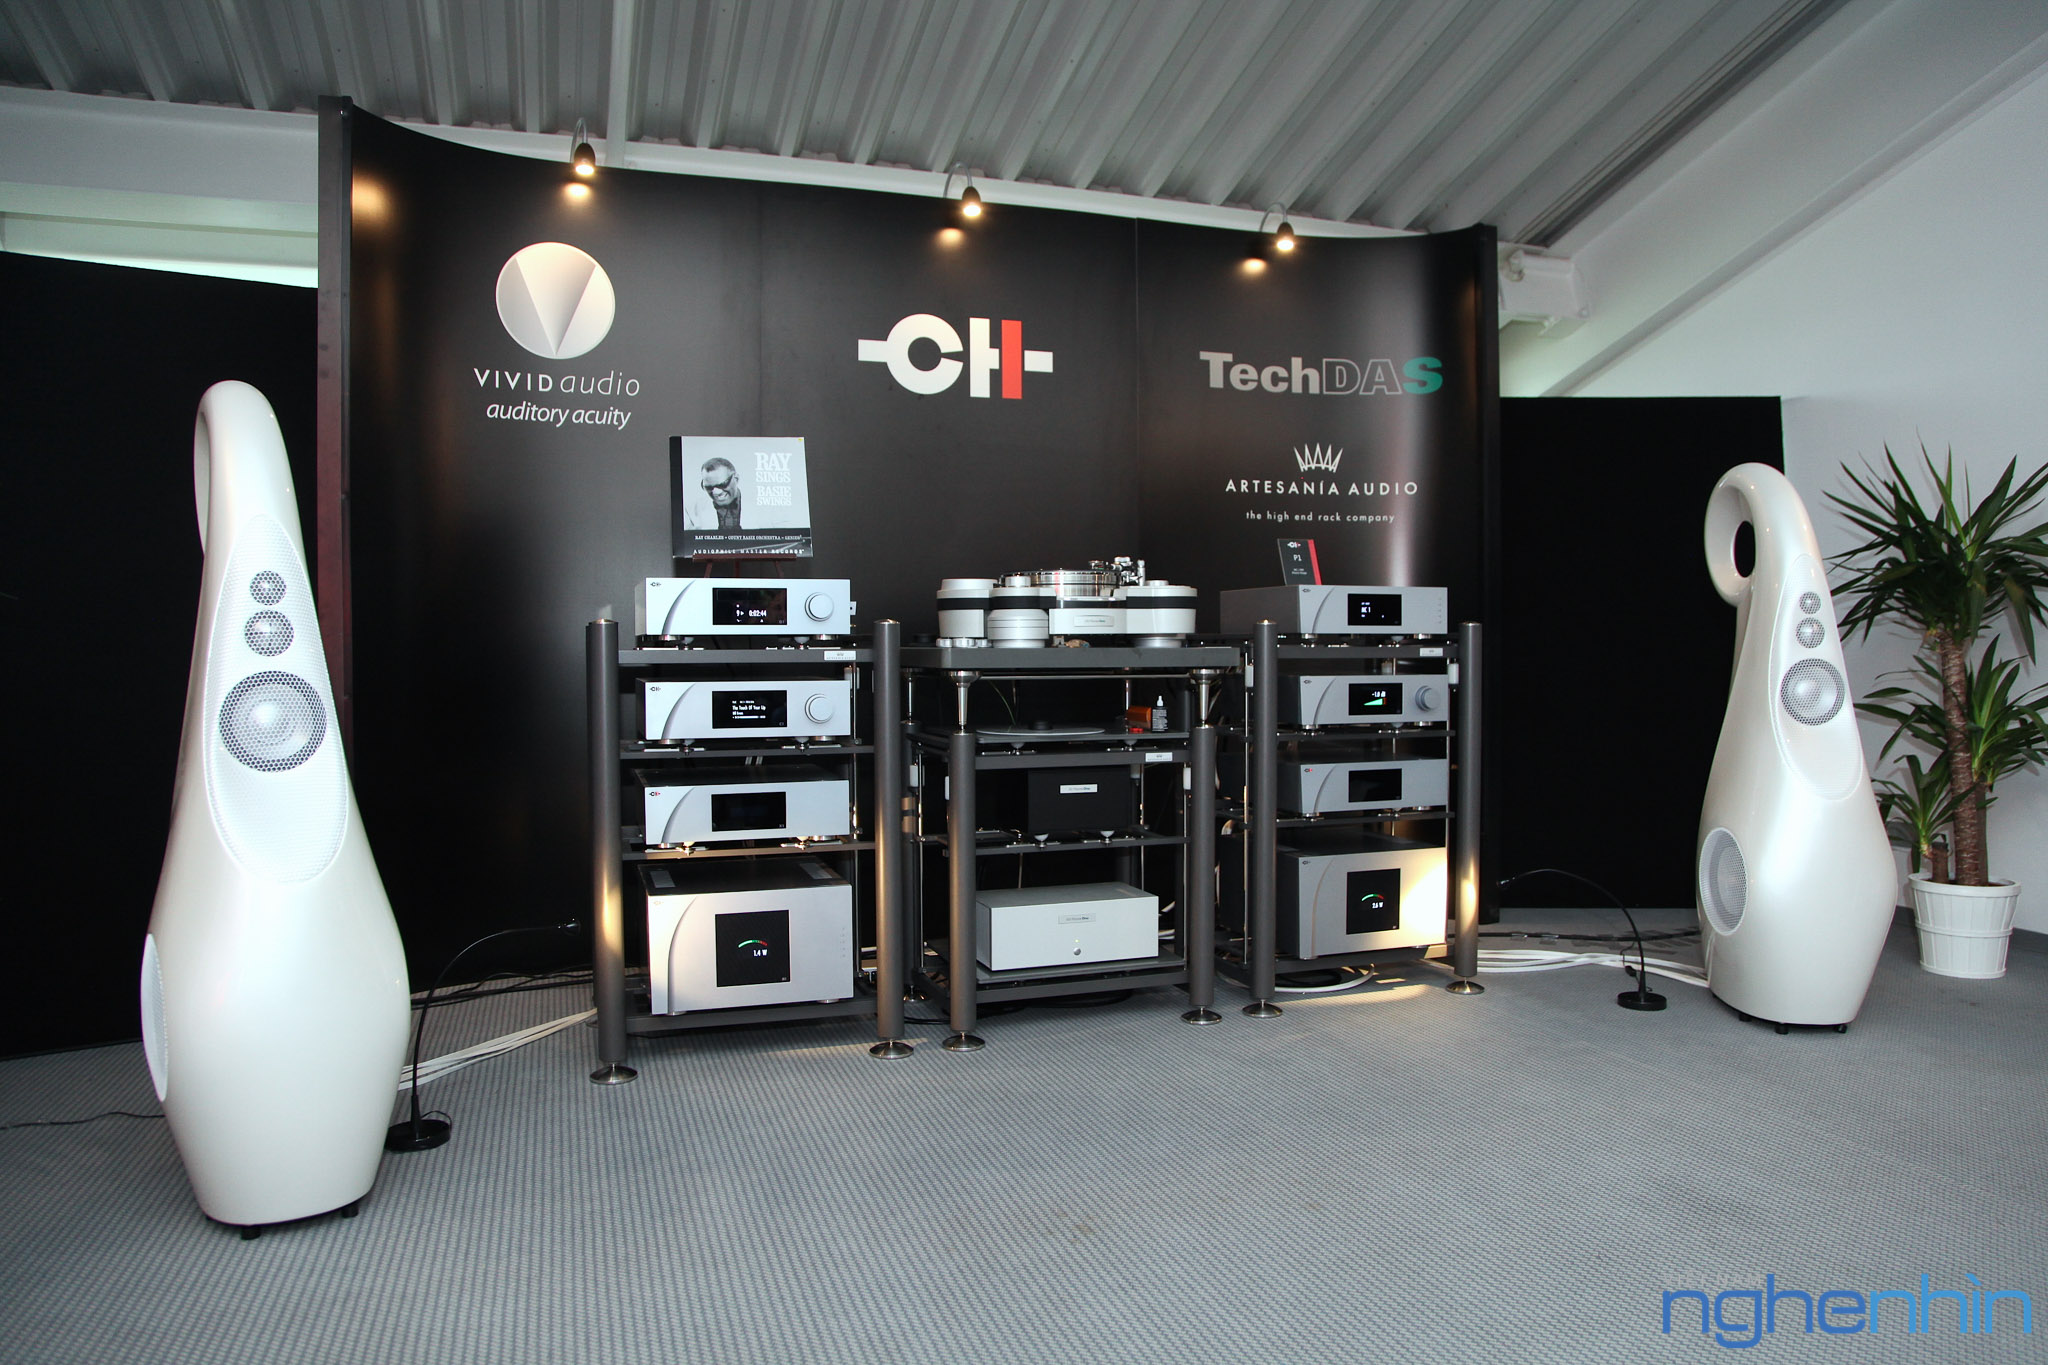 Munich Hi-end Show 2015 - 500 hãng audio so tài (P4) ảnh 2